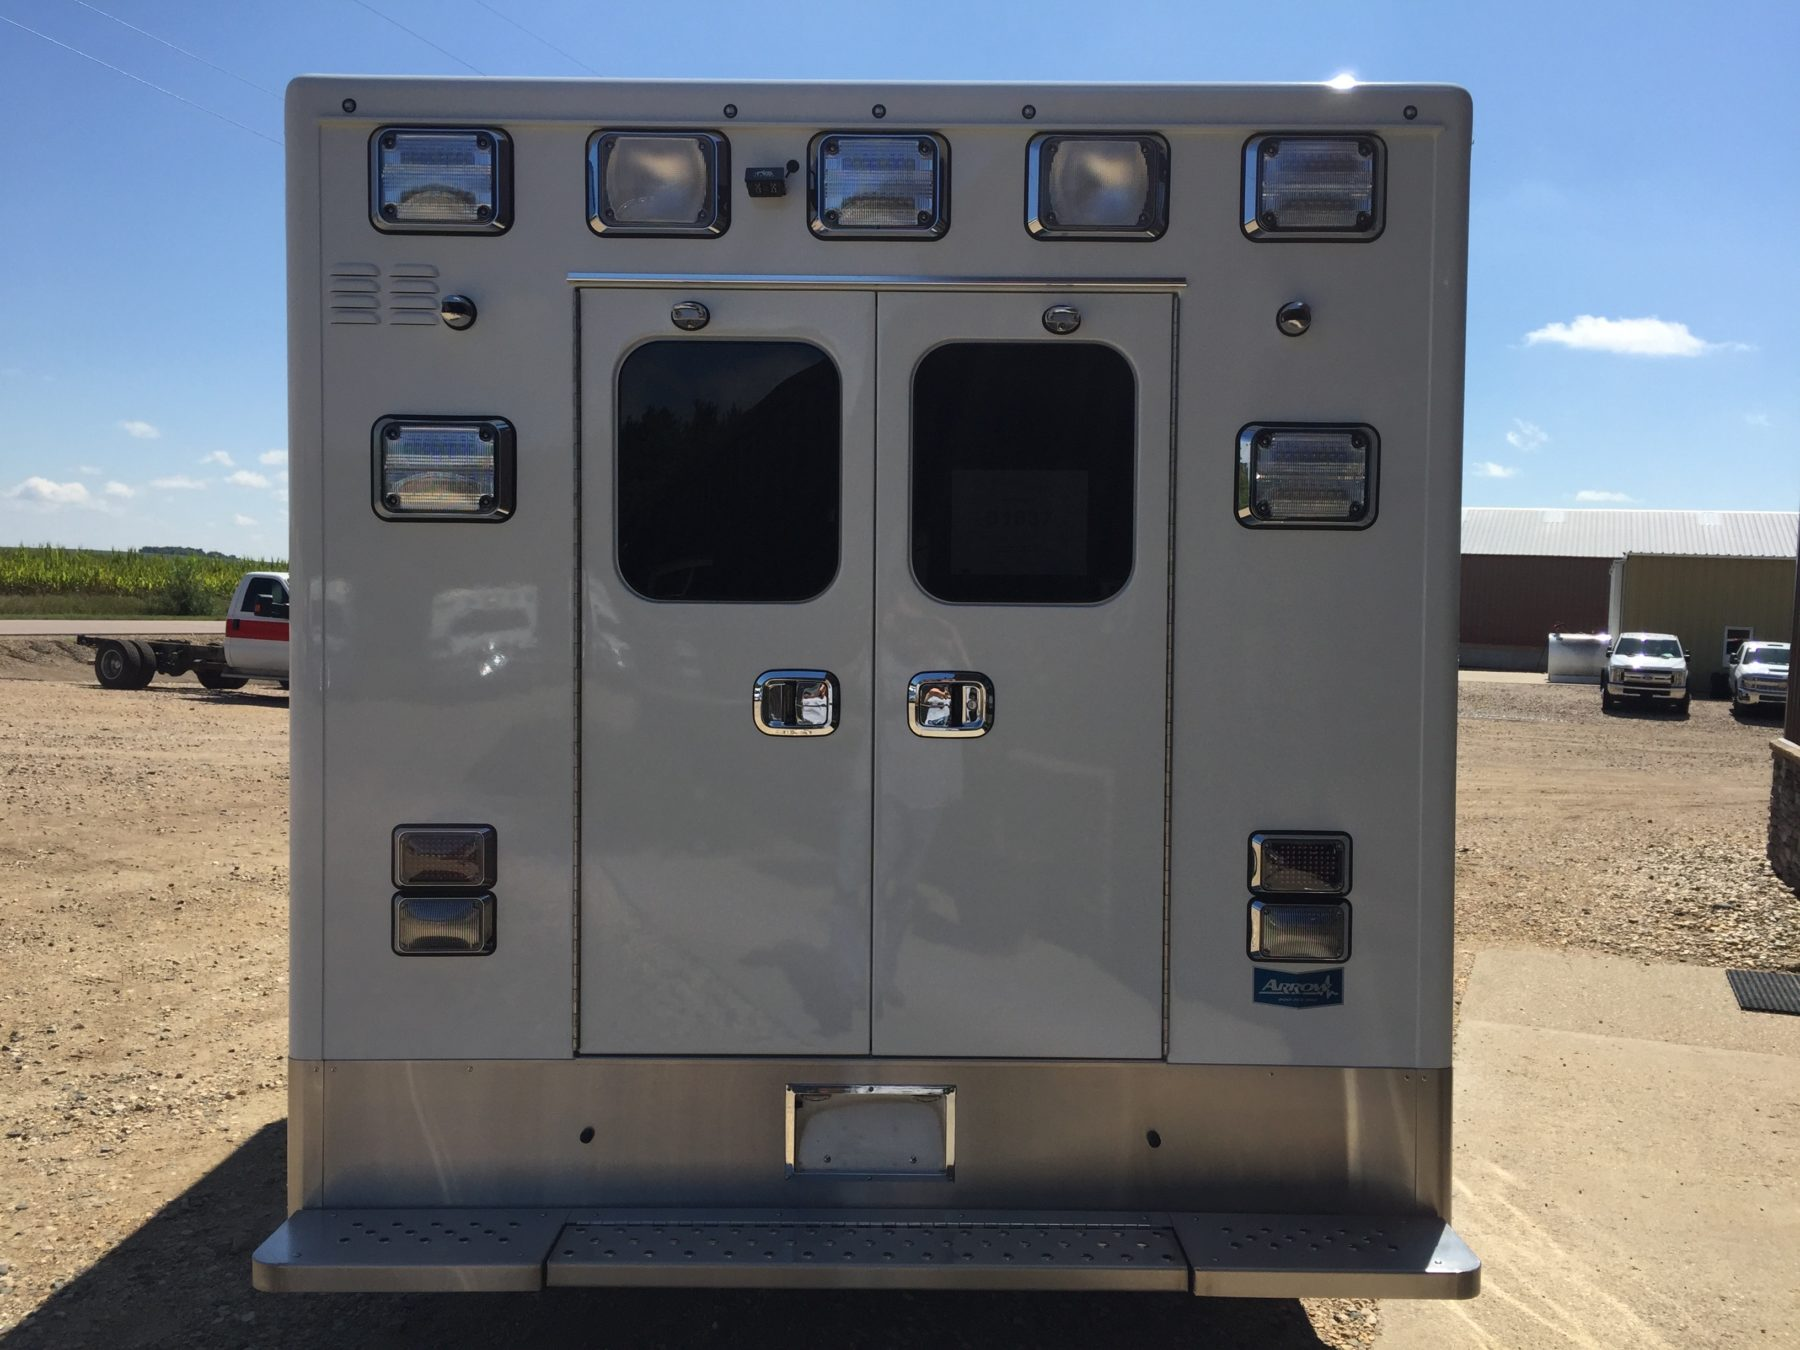 2018 Ford F350 4x4 Type 1 Ambulance For Sale – Picture 8